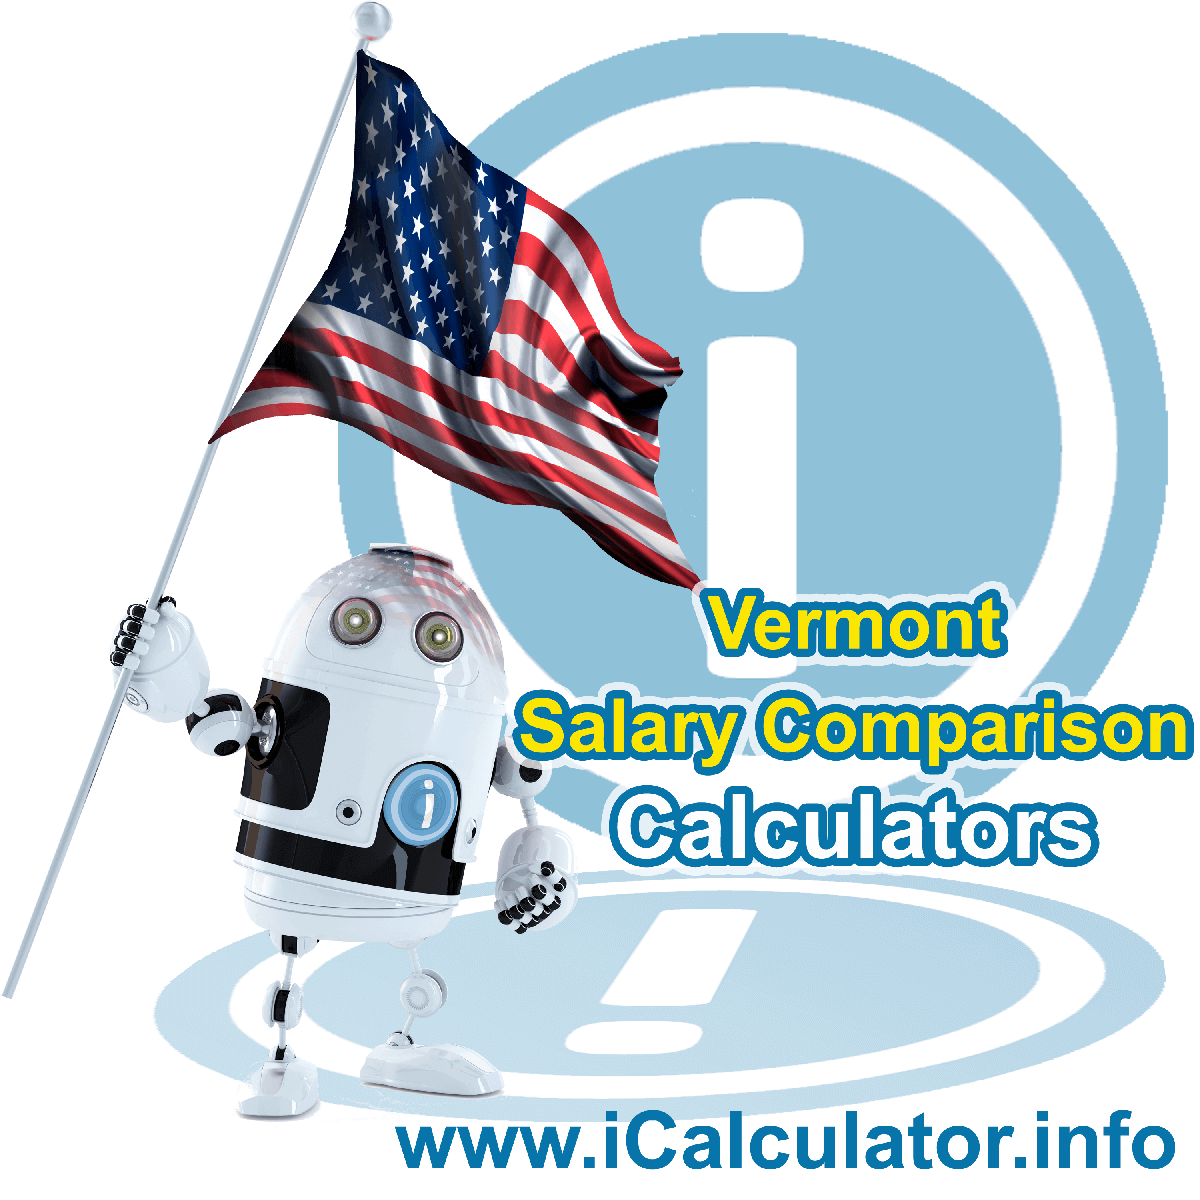 Vermont Salary Comparison Calculator 2019 | iCalculator | The Vermont Salary Comparison Calculator allows you to quickly calculate and compare upto 6 salaries in Vermont or between other states for the 2019 tax year and historical tax years. Its an excellent tool for jobseekers, pay raise comparison and comparison of salaries between different US States